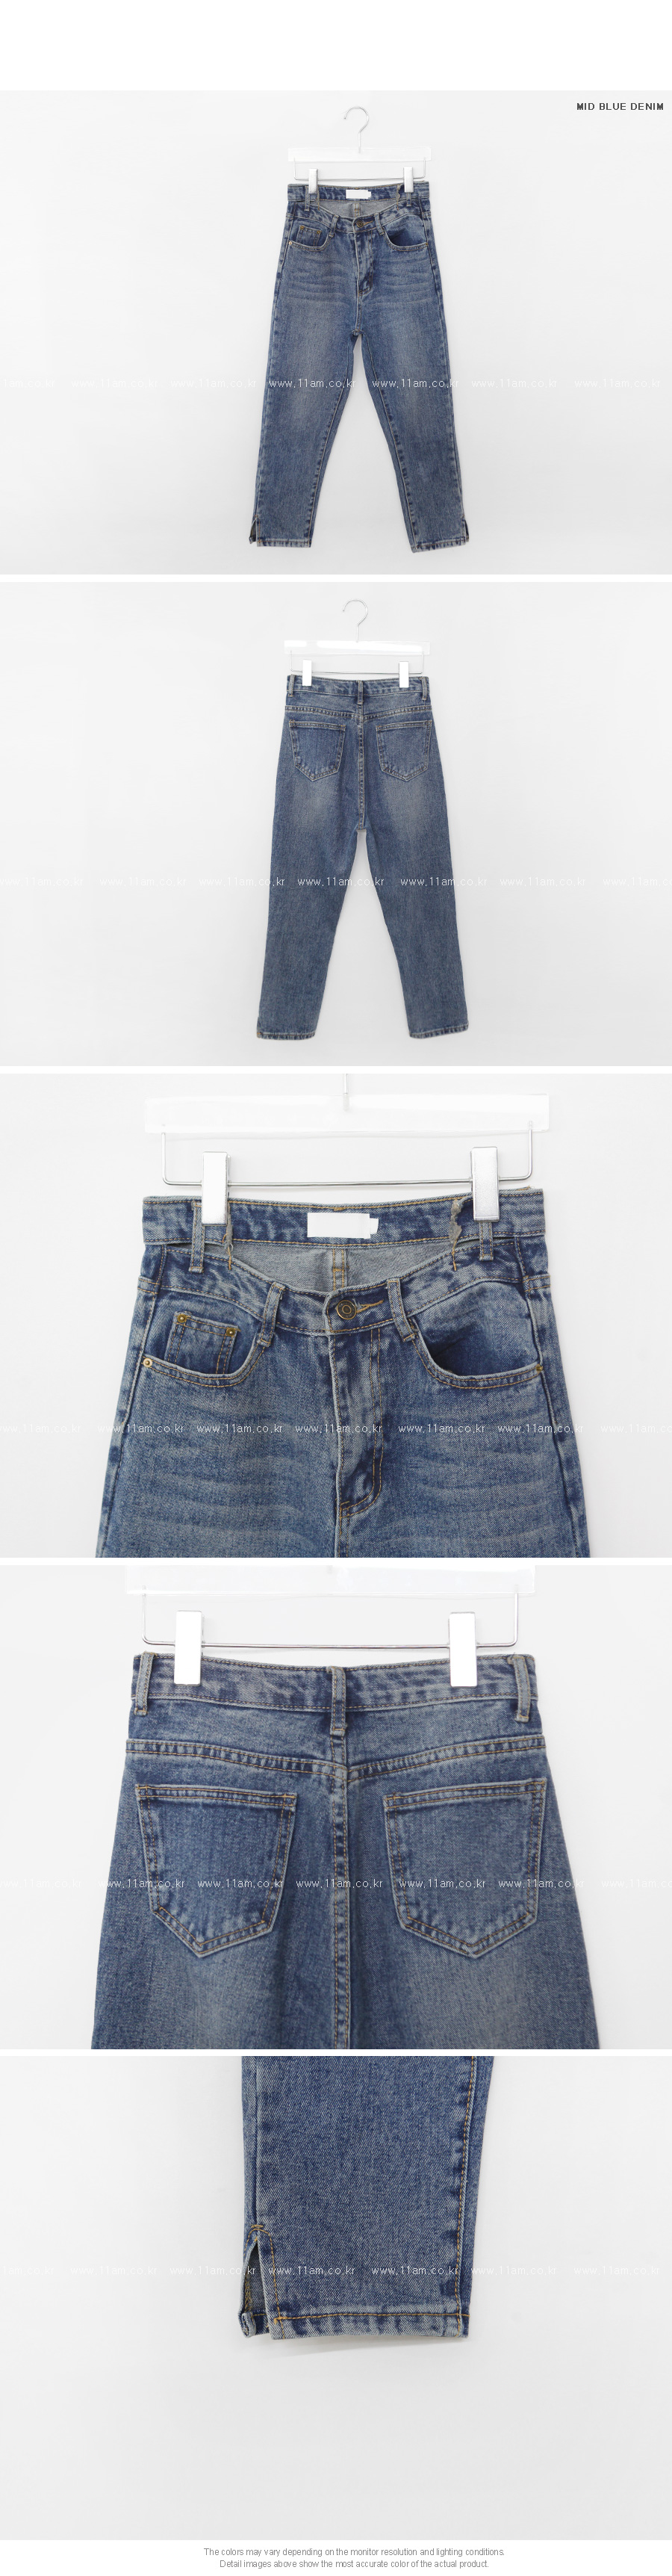 High-Rise Slim Cut Jeans|